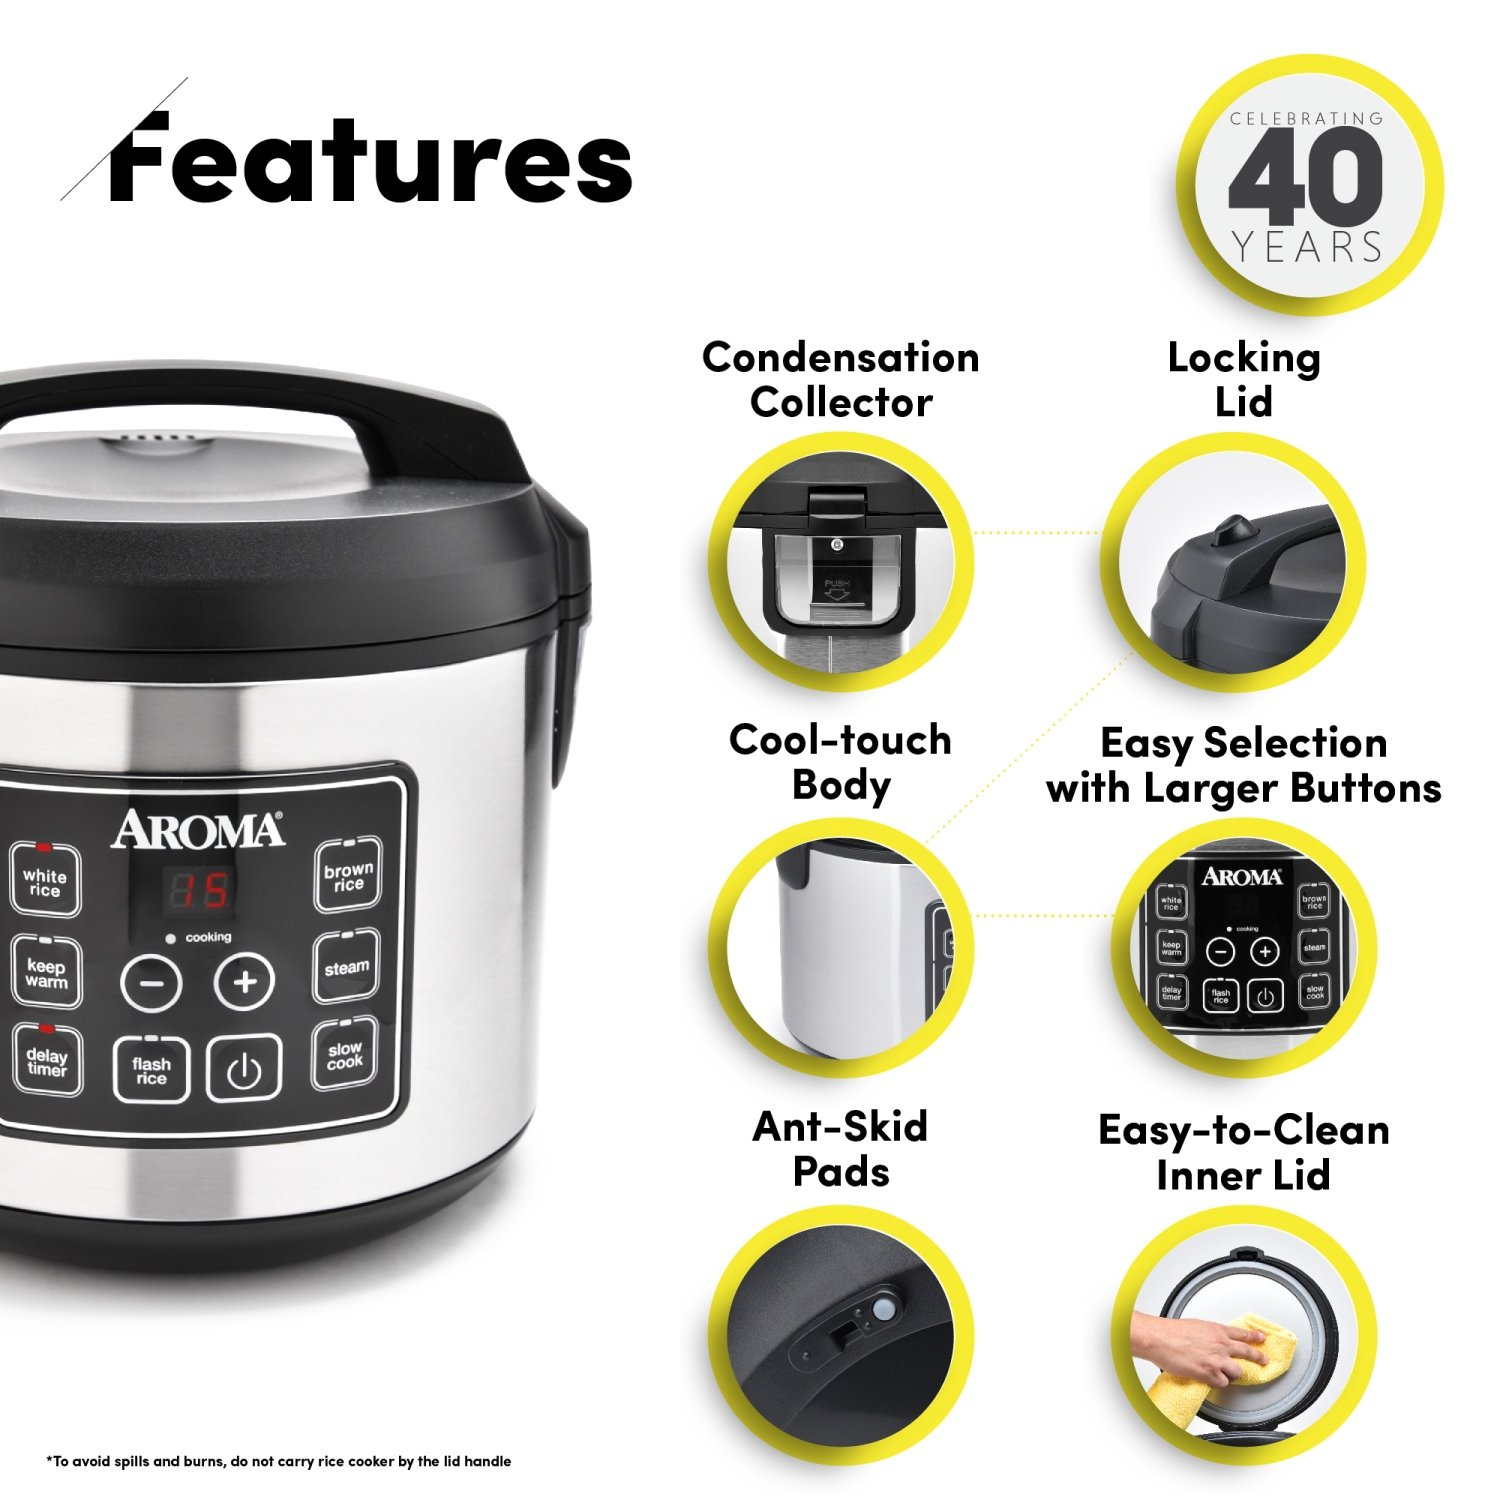 Aroma Housewares 20 Cup Cooked (10 cup uncooked) Digital Rice Cooker, Slow Cooker, Food Steamer, SS Exterior (ARC-150SB) by Aroma Housewares (Image #2)